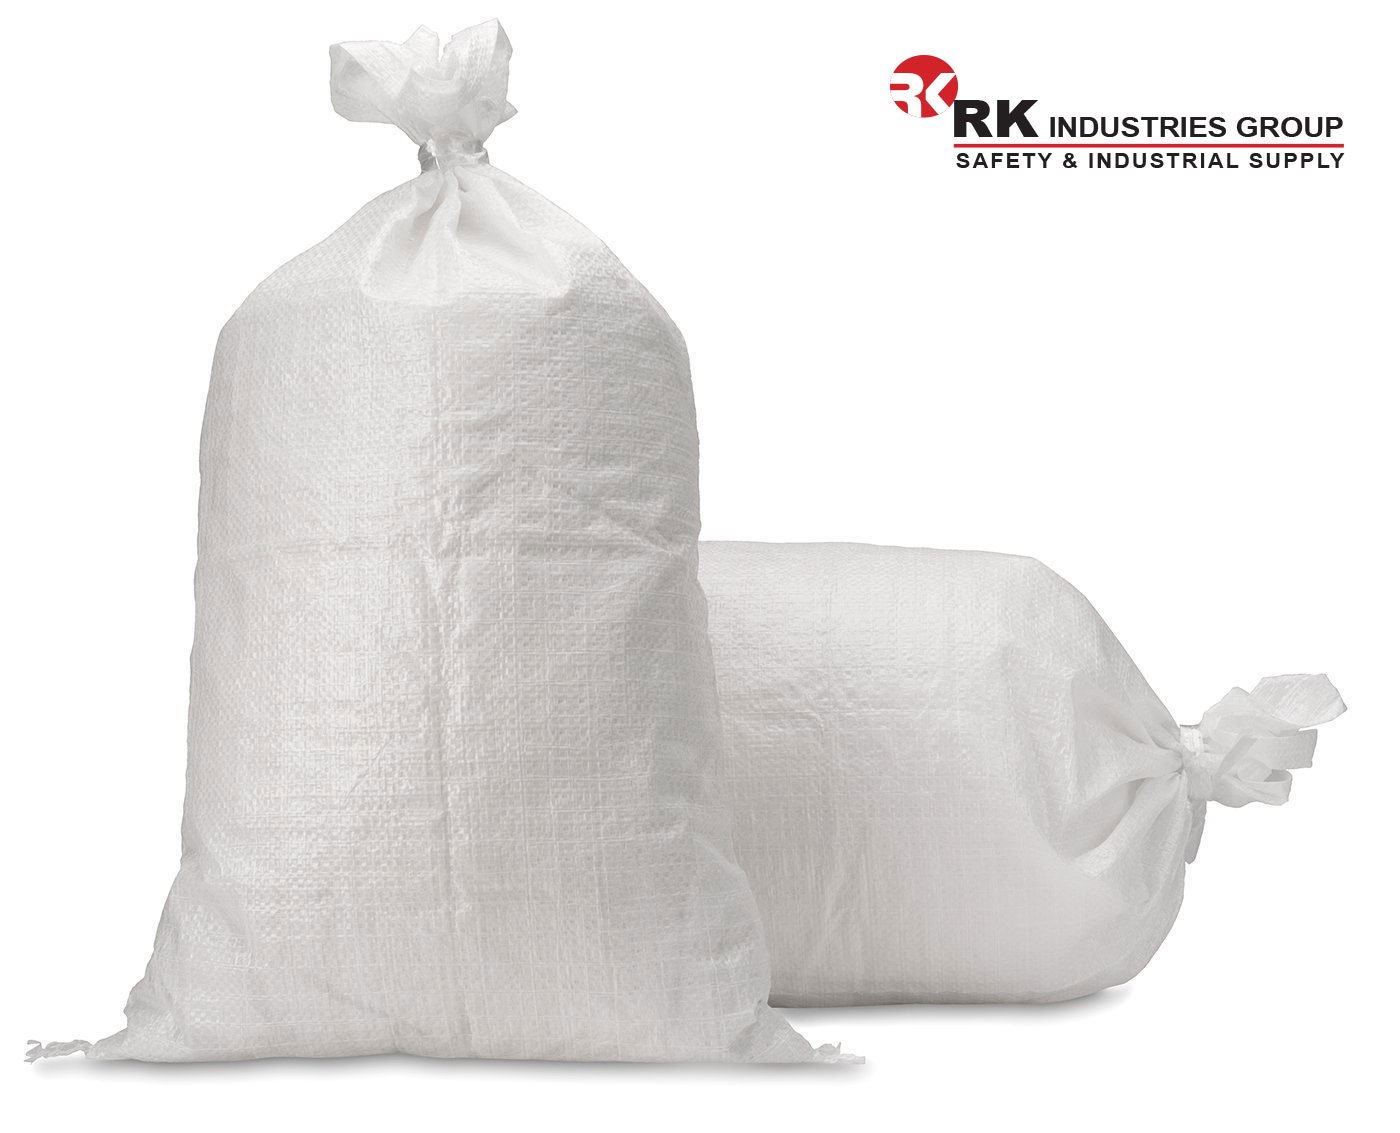 RK Sandbags Empty Woven Polypropylene Sand Bags with Built-in Ties, UV Protection, Dust Proof, Water and Oil Resistant (Size: 17x27, Pack of 500) by RK Safety